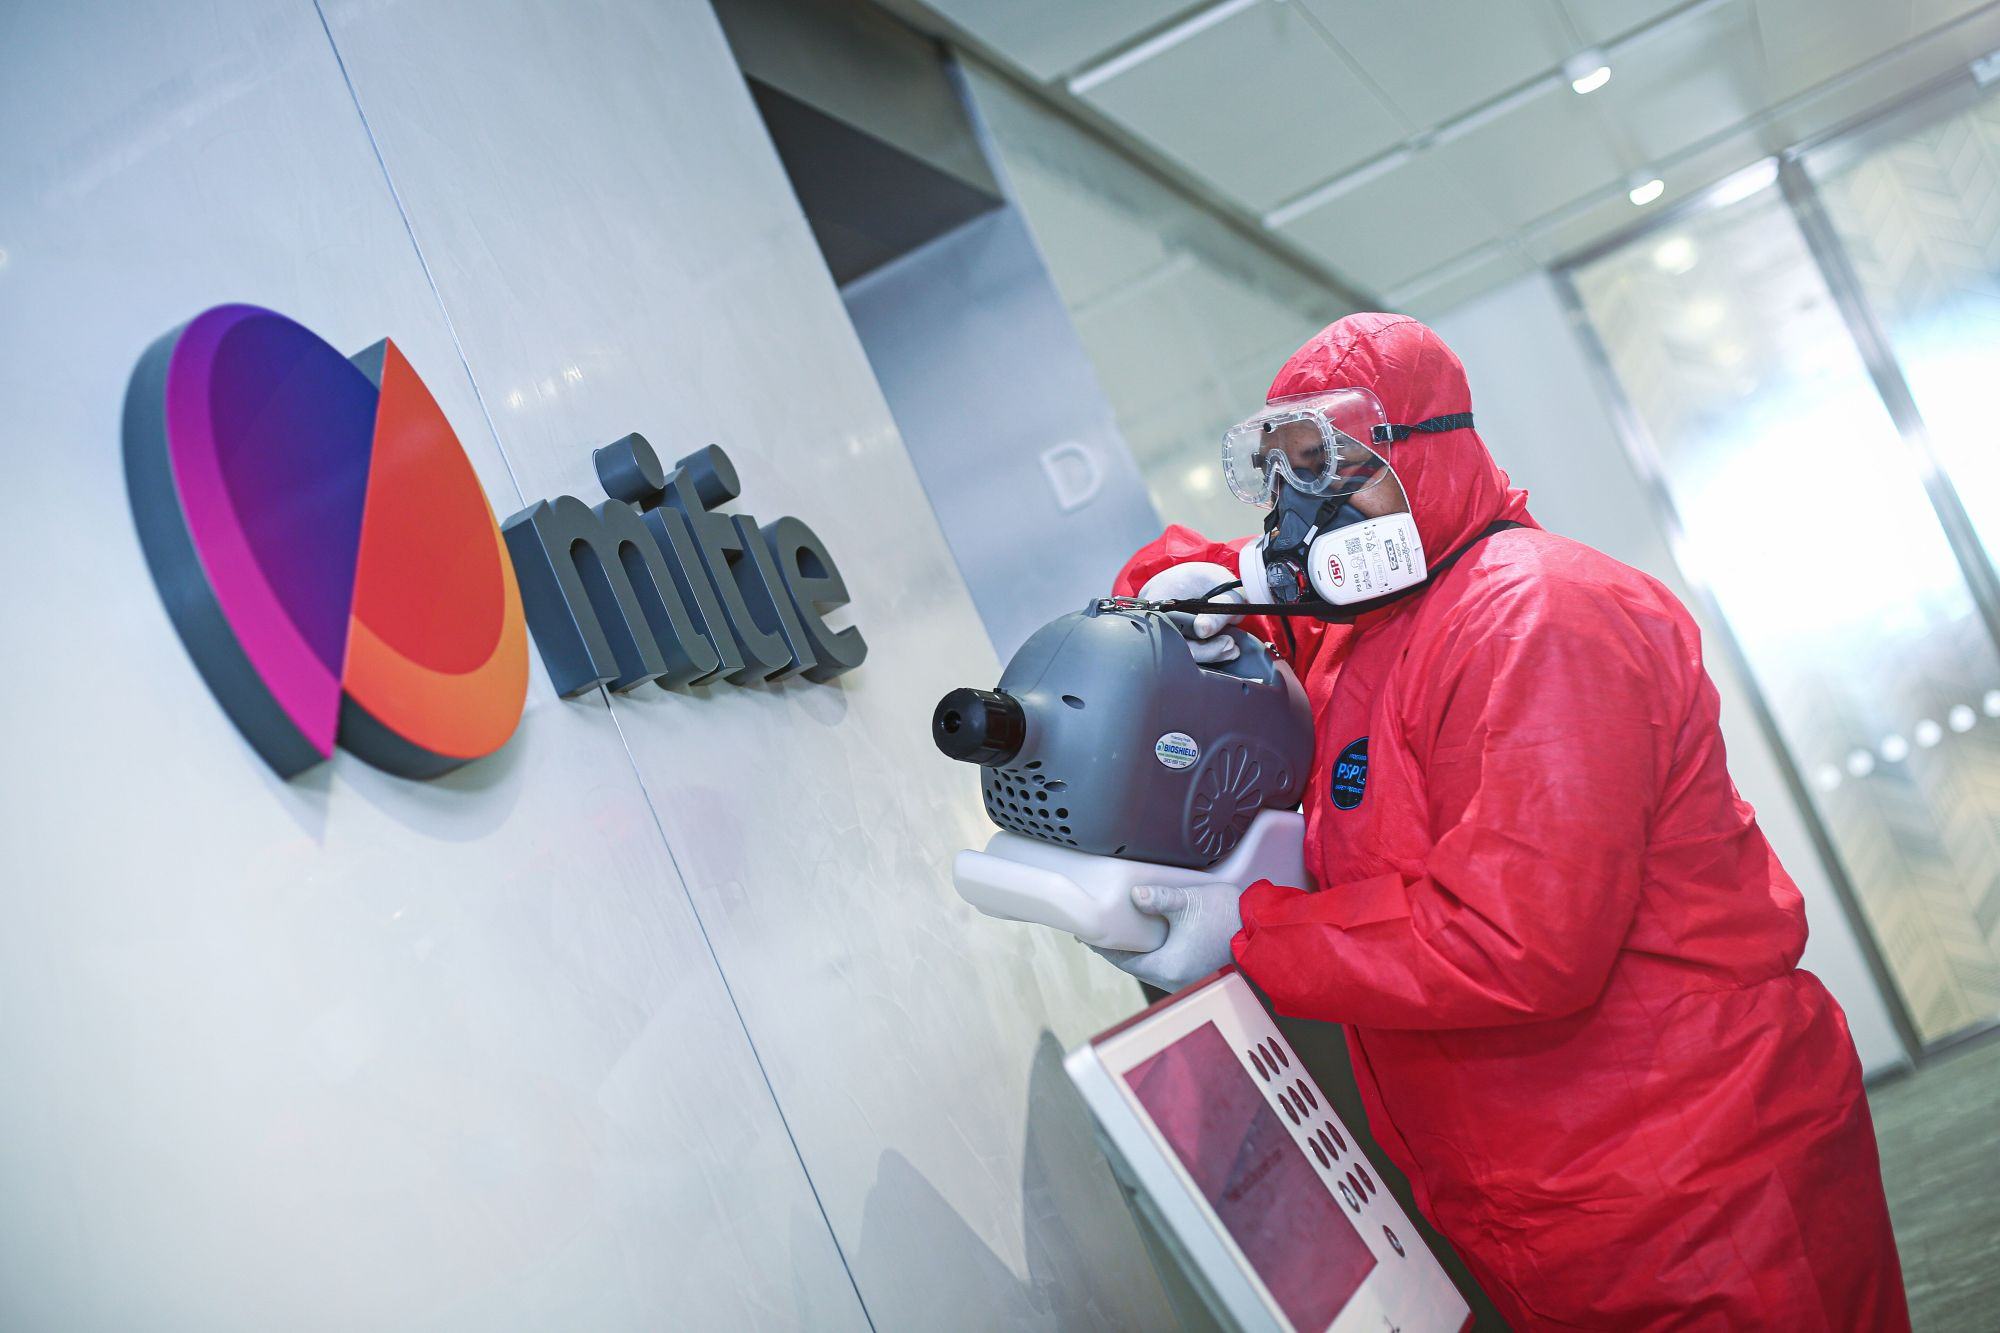 Mitie Says New Cleaning Product Is Proven To Combat COVID-19 On Surfaces